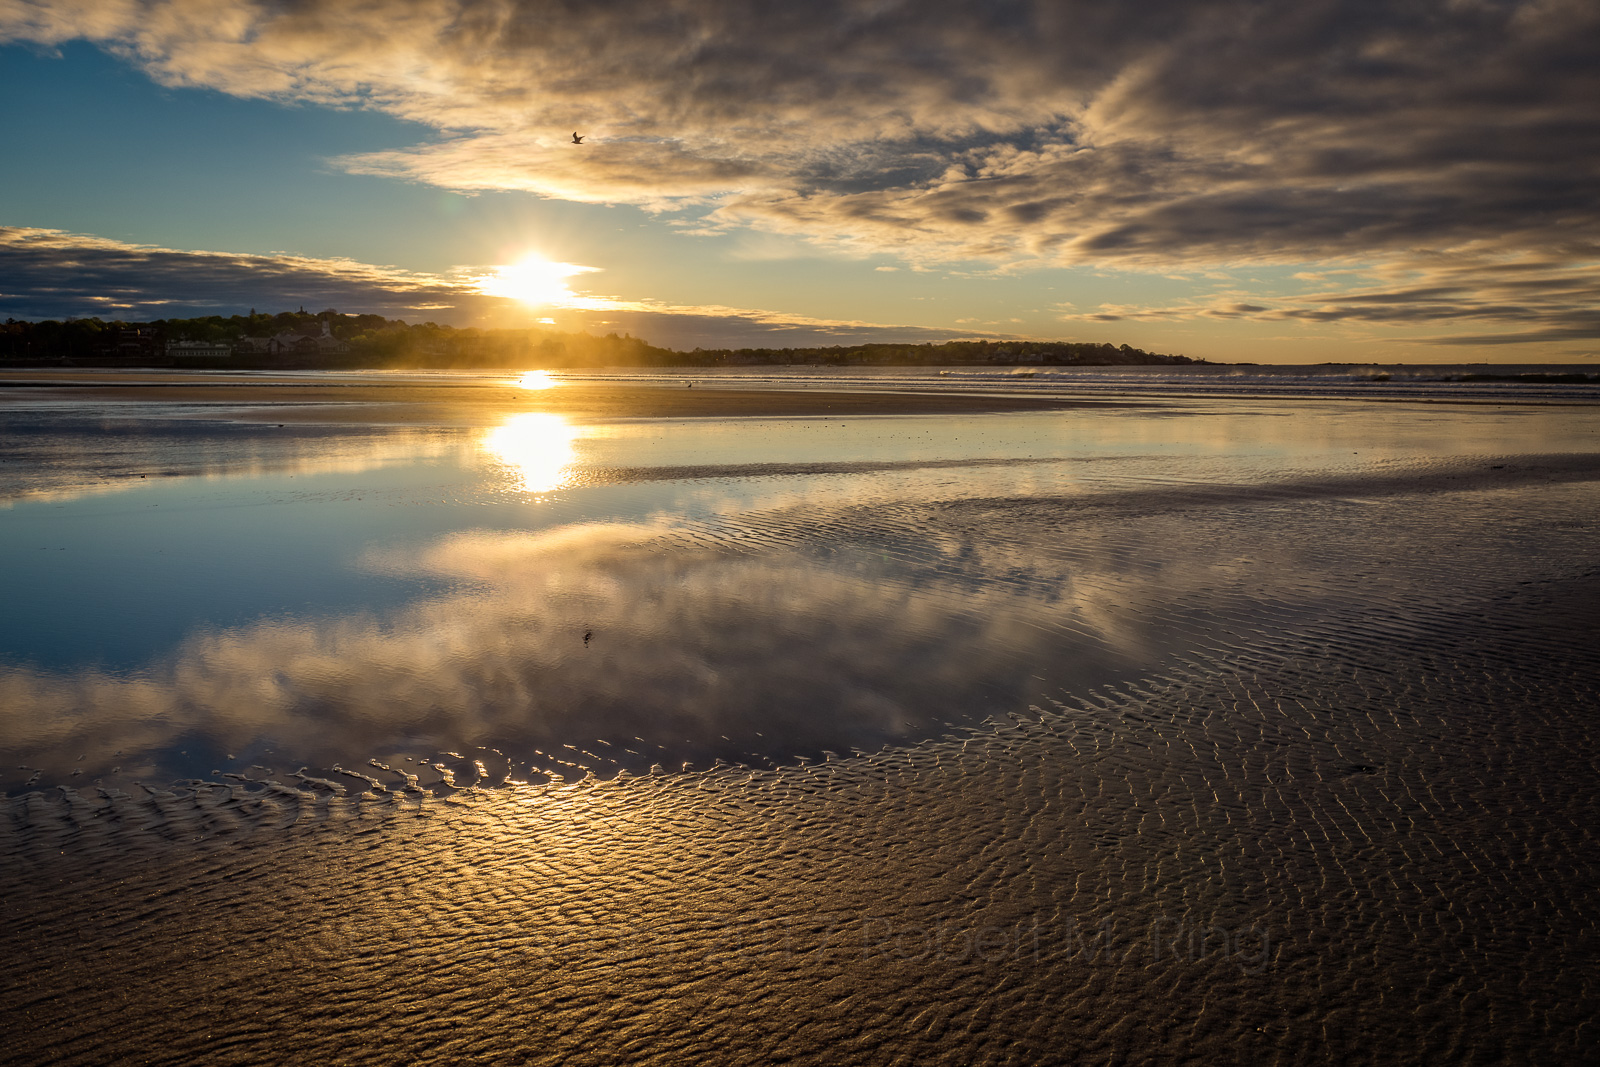 Kings Beach, Lynn, Lynn Shore Drive, MA, Massachusetts, sunrise, coast, clouds, new england, photo